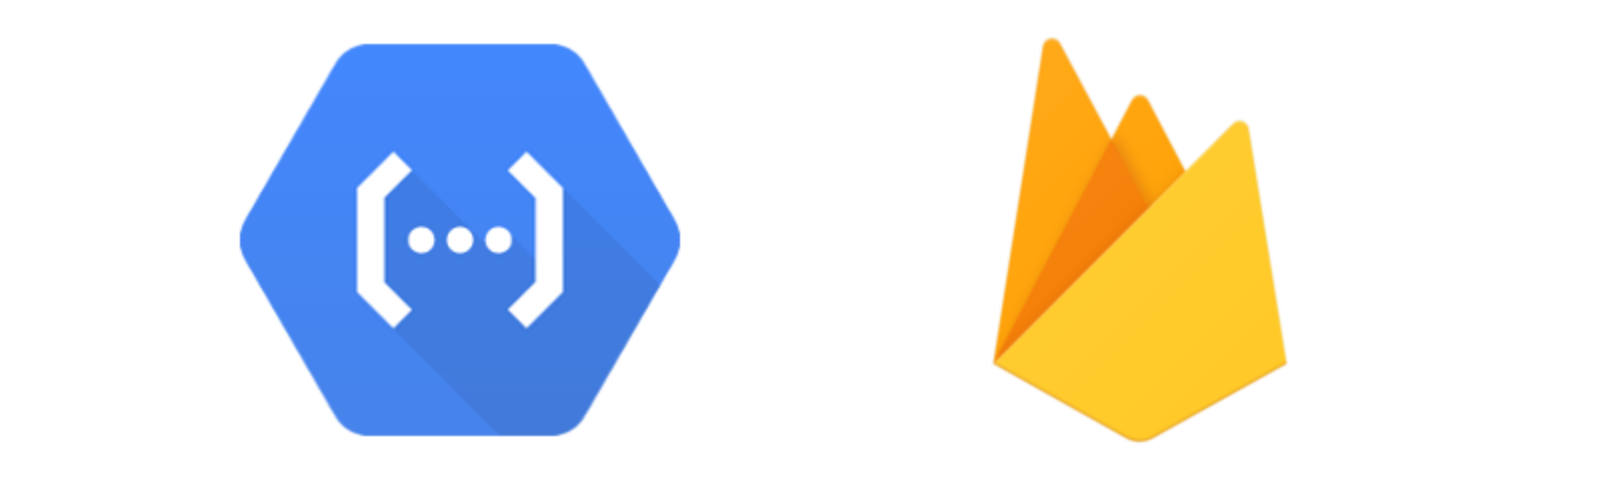 Firebase Cloud Functions – codeburst